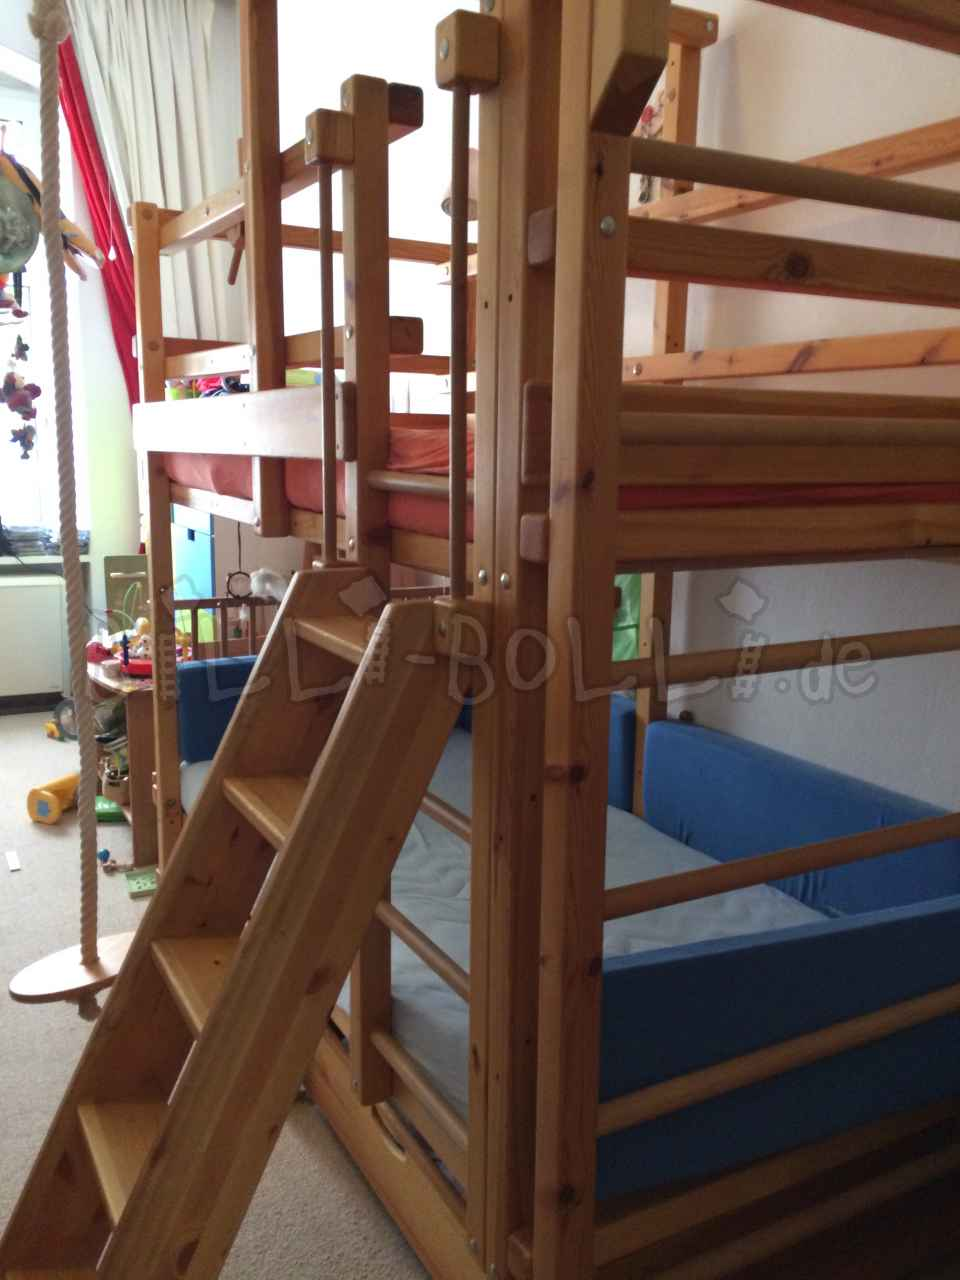 Bunk bed pine oiled (second hand bunk bed)